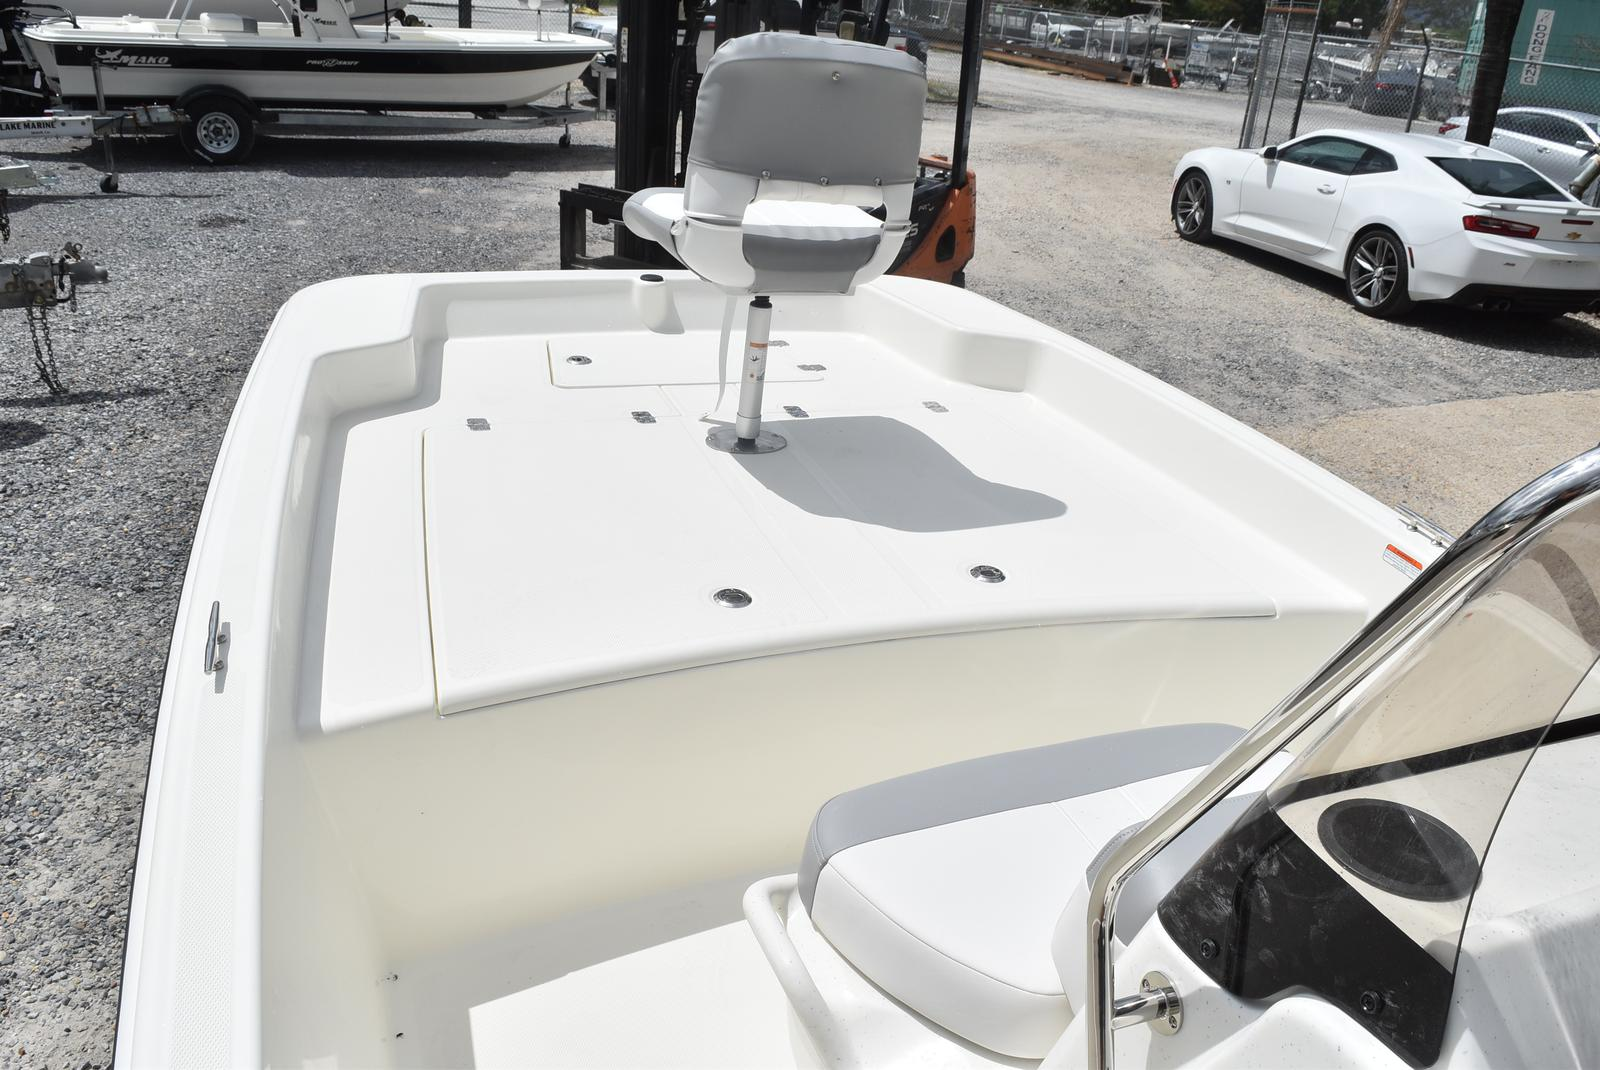 2020 Mako boat for sale, model of the boat is Pro Skiff 17, 75 ELPT & Image # 417 of 702